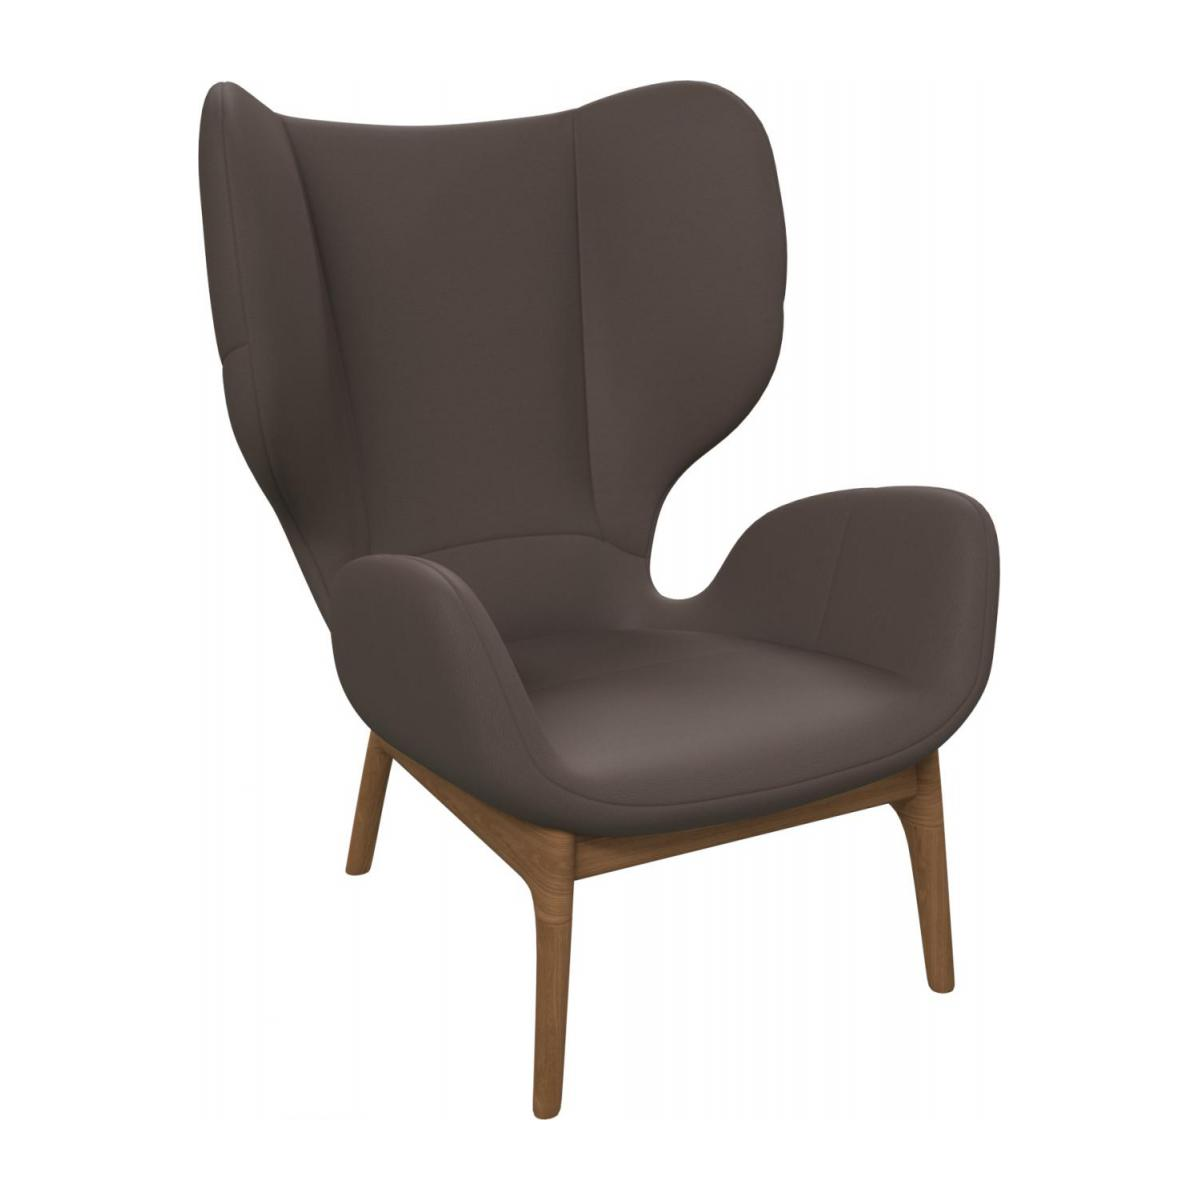 Armchair in Eton veined leather, stone n°1